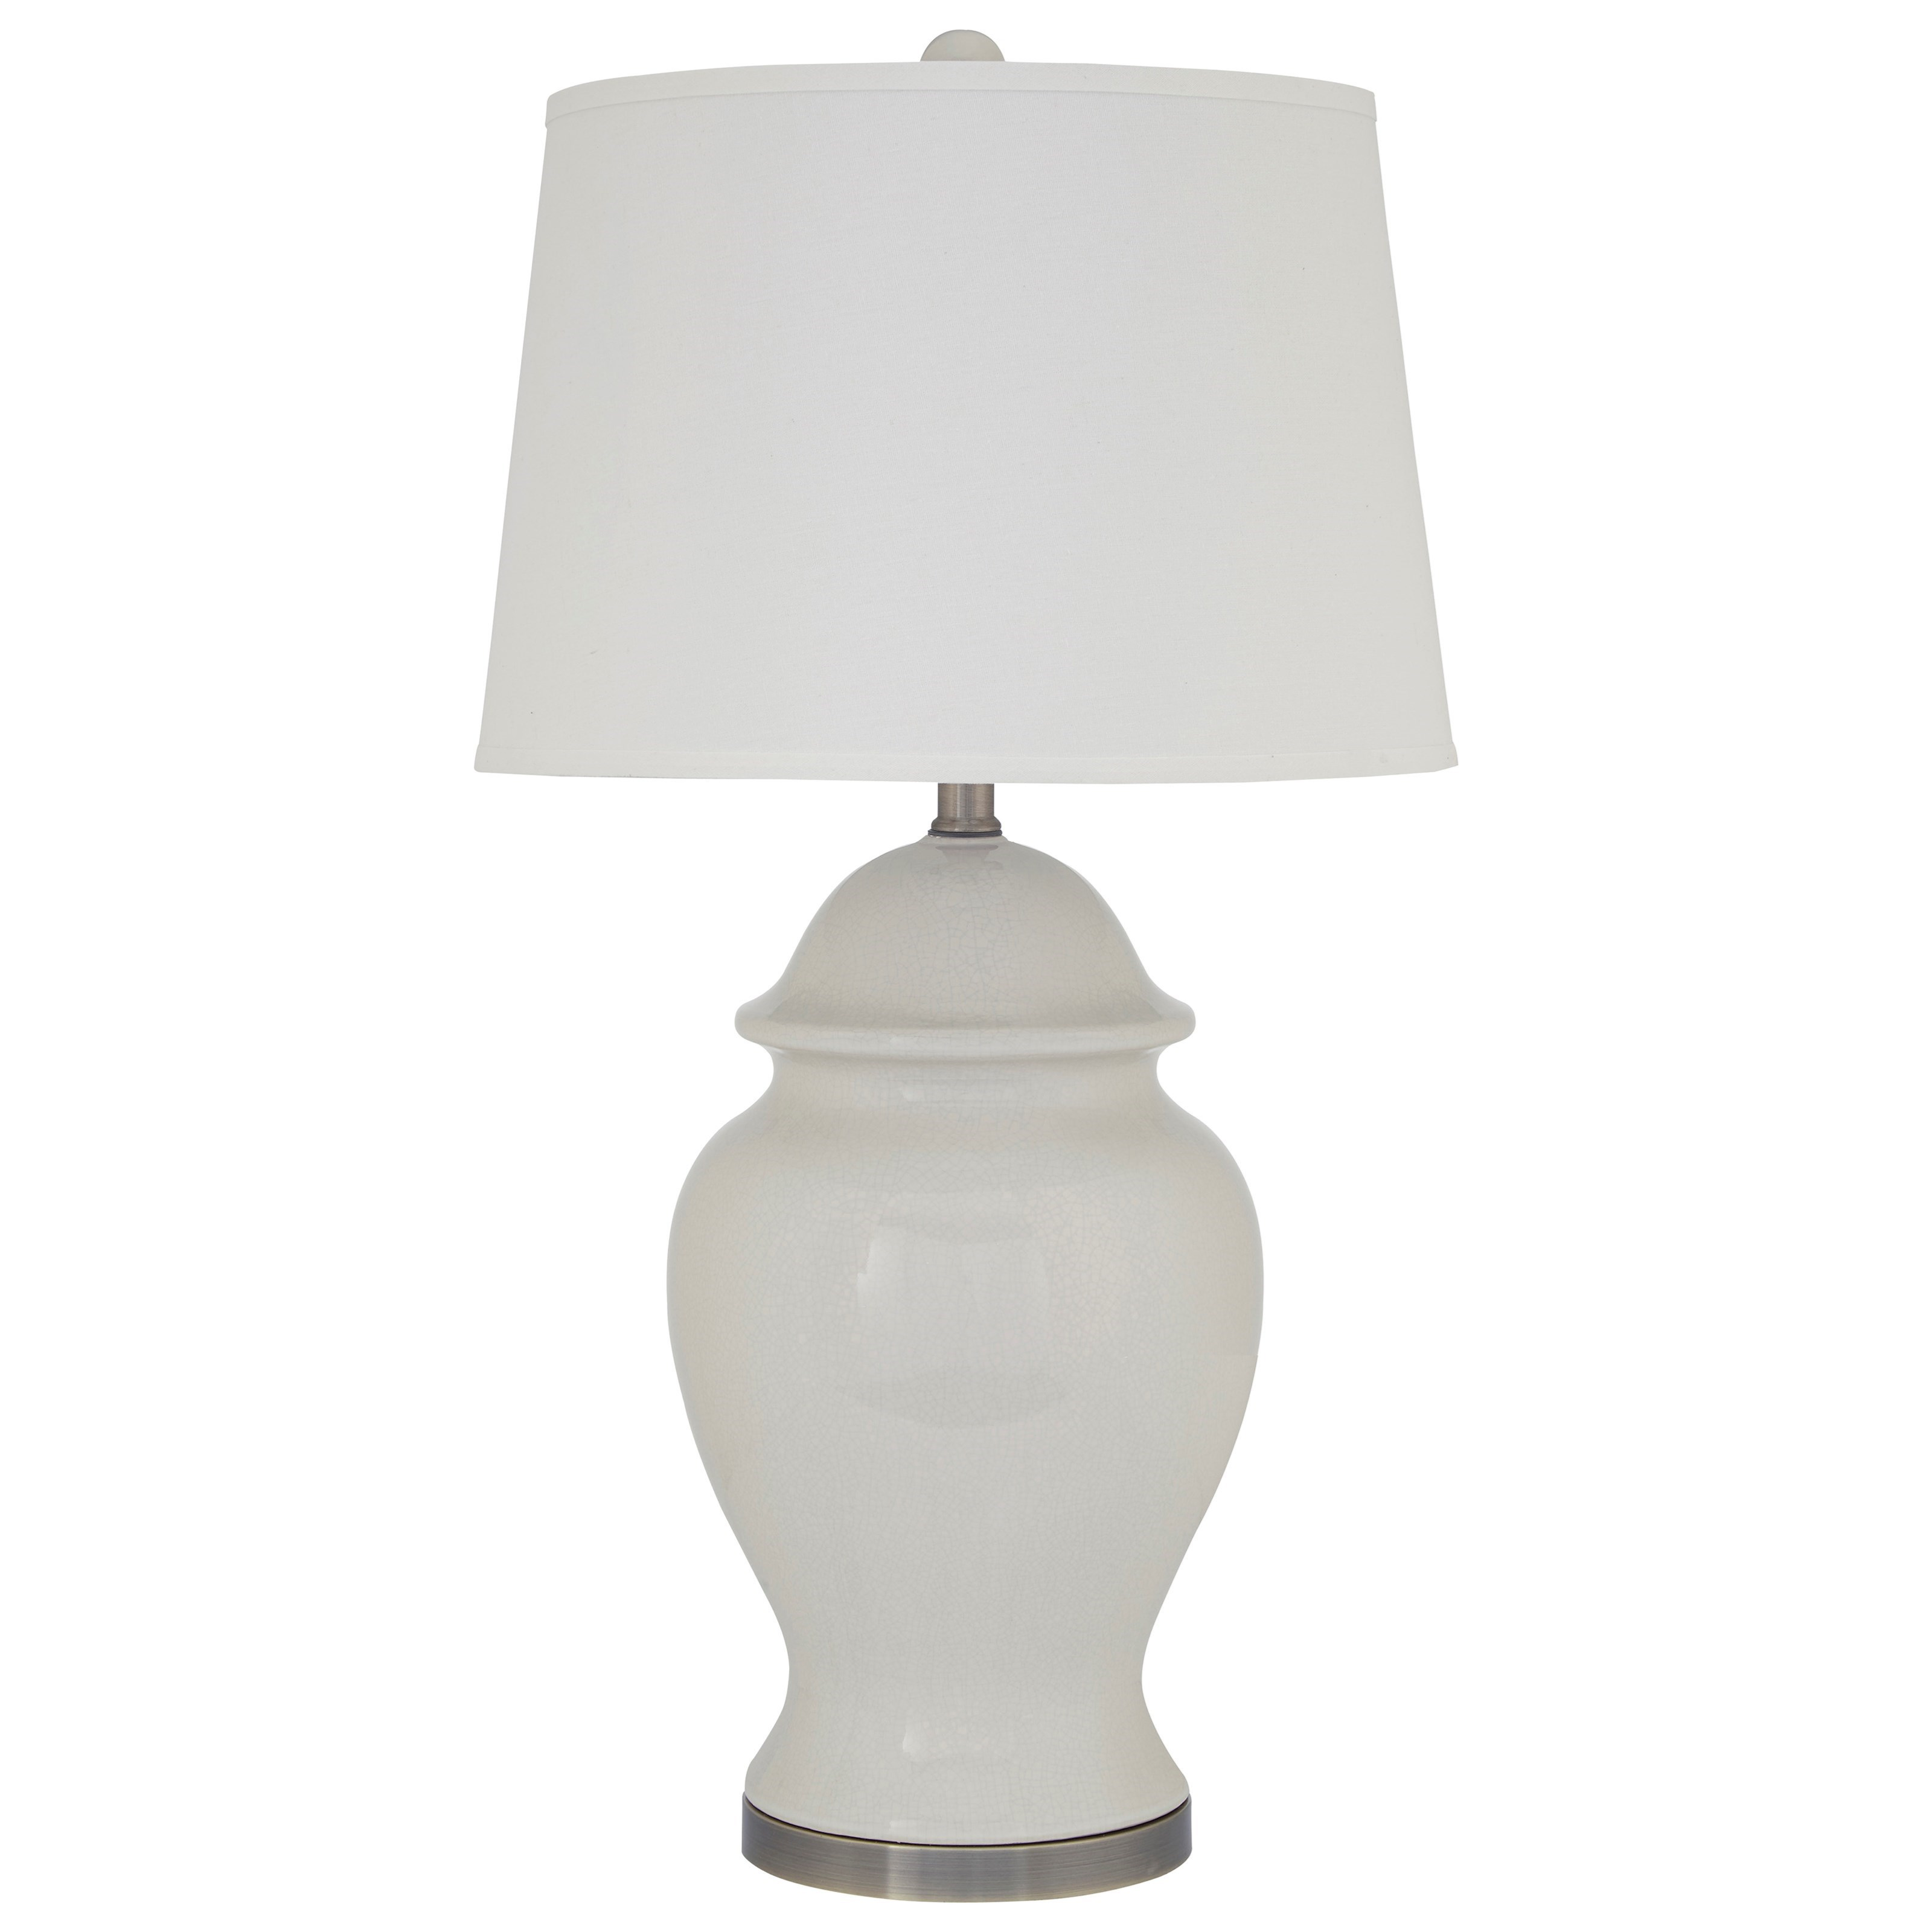 Signature Design by Ashley Lamps - Vintage Style Darena Ceramic Table Lamp - Item Number: L100484